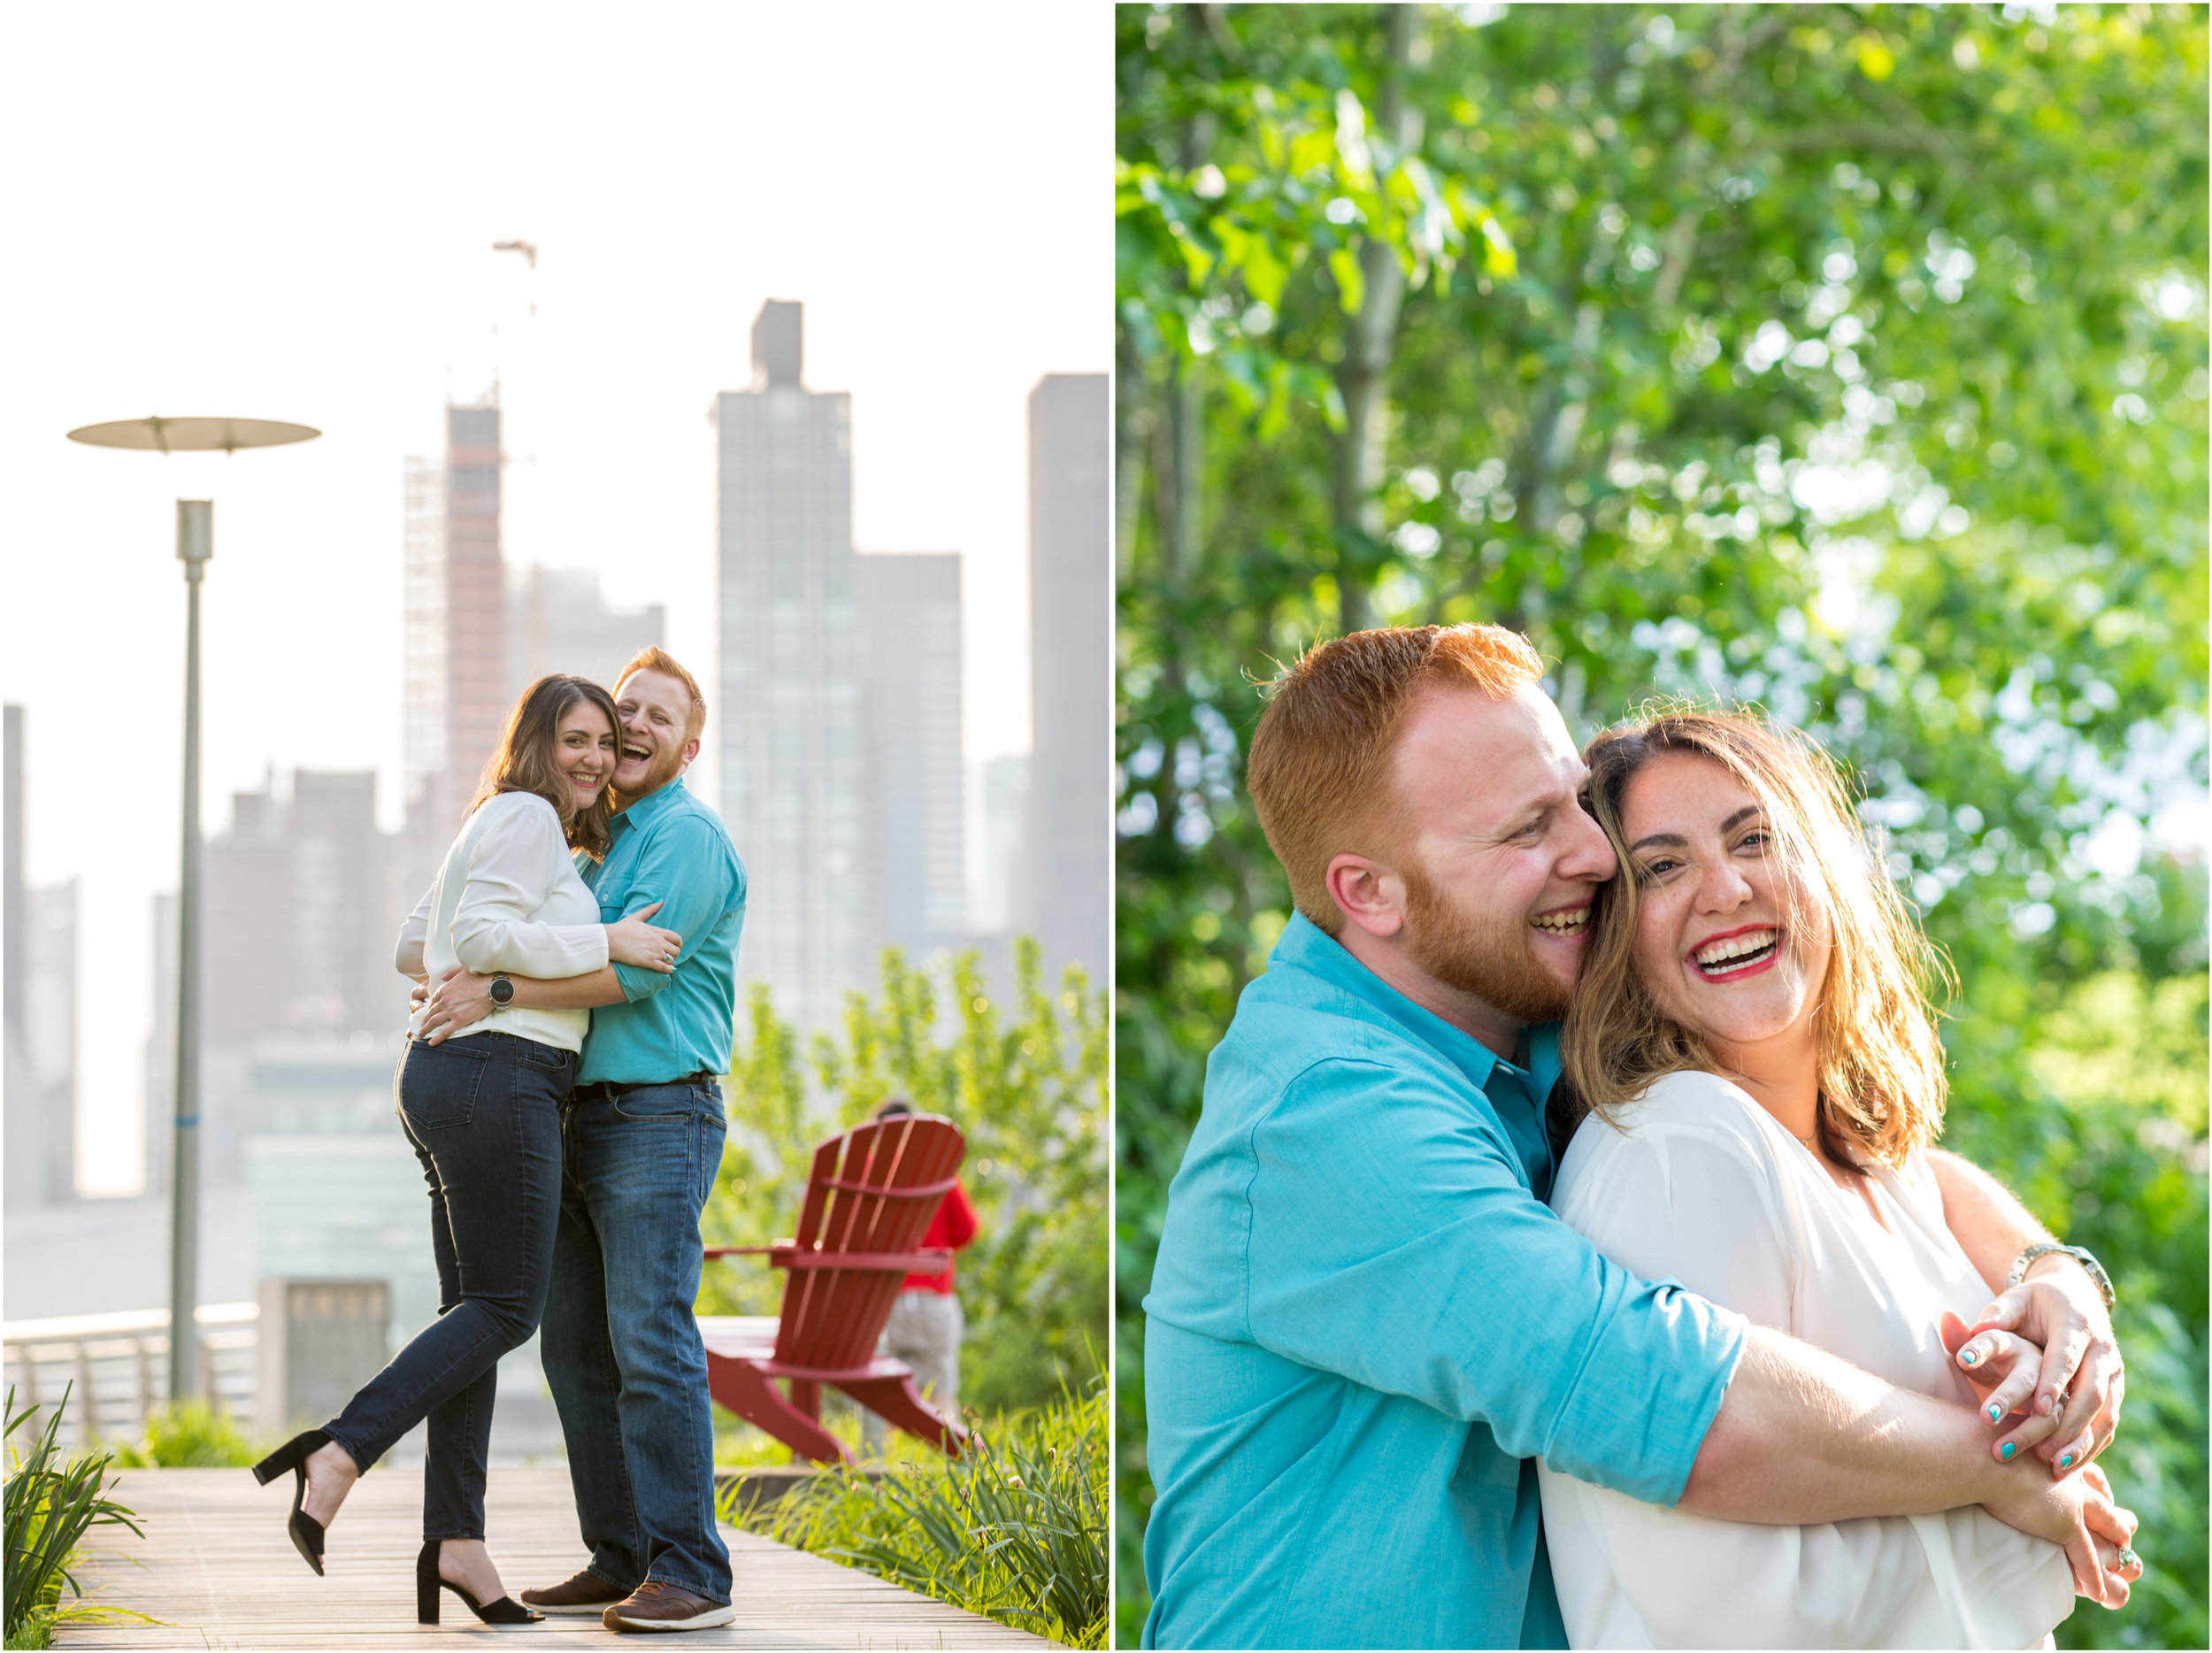 NYC Engagement Photo Session Shoot Gantry Plaza State Park Photographer New York City